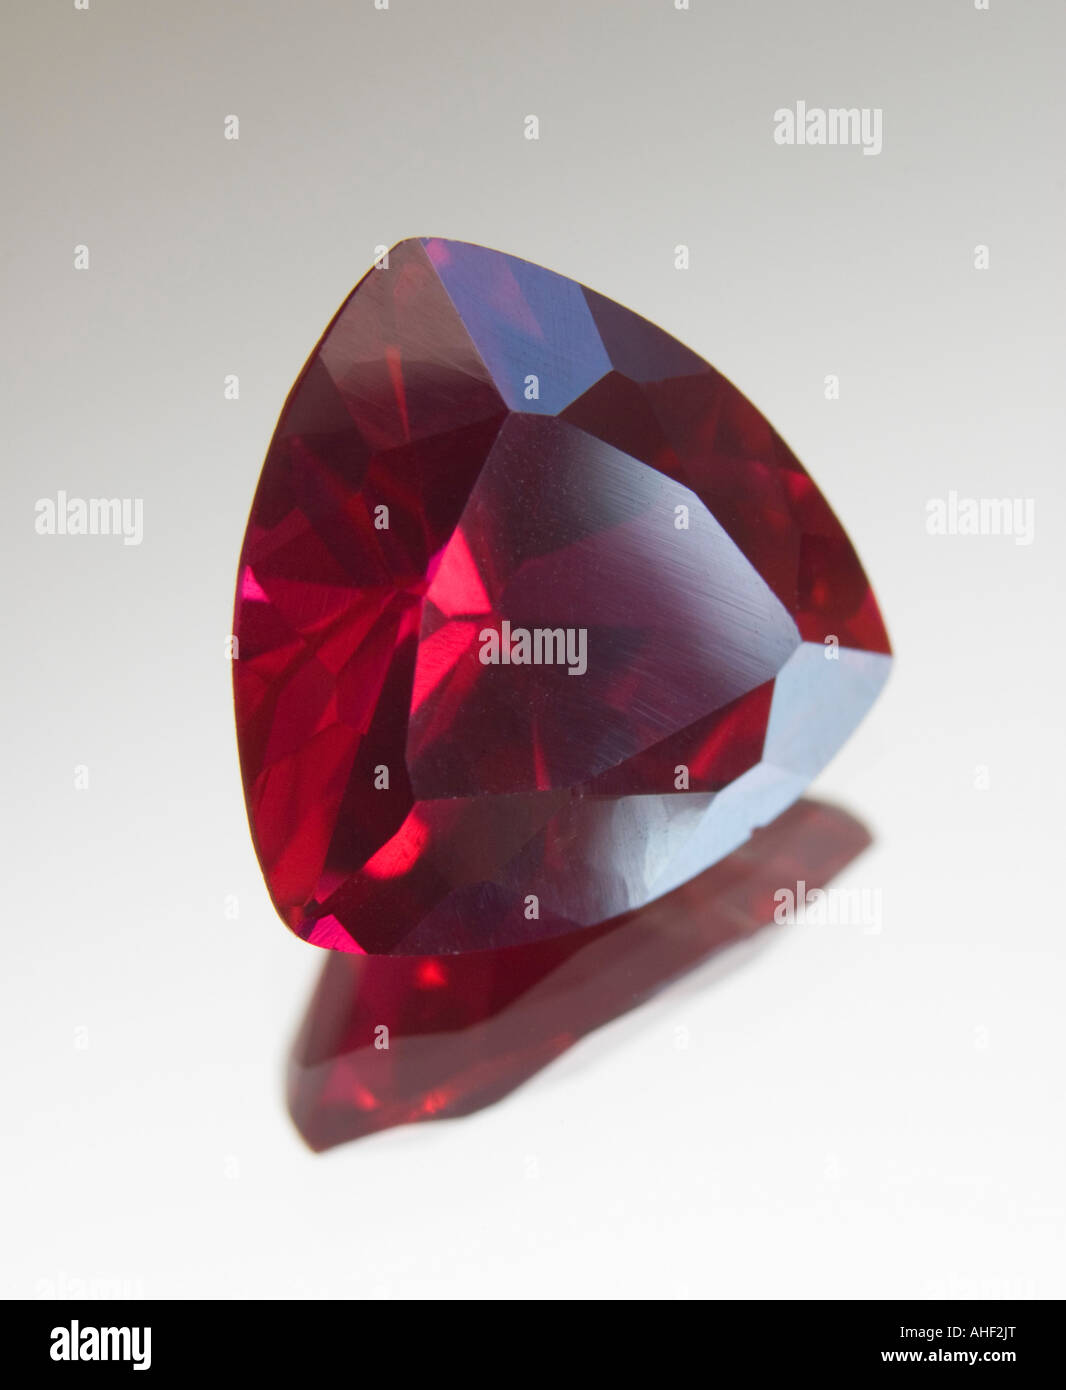 ef0357a85 Cut Ruby Stock Photos & Cut Ruby Stock Images - Alamy